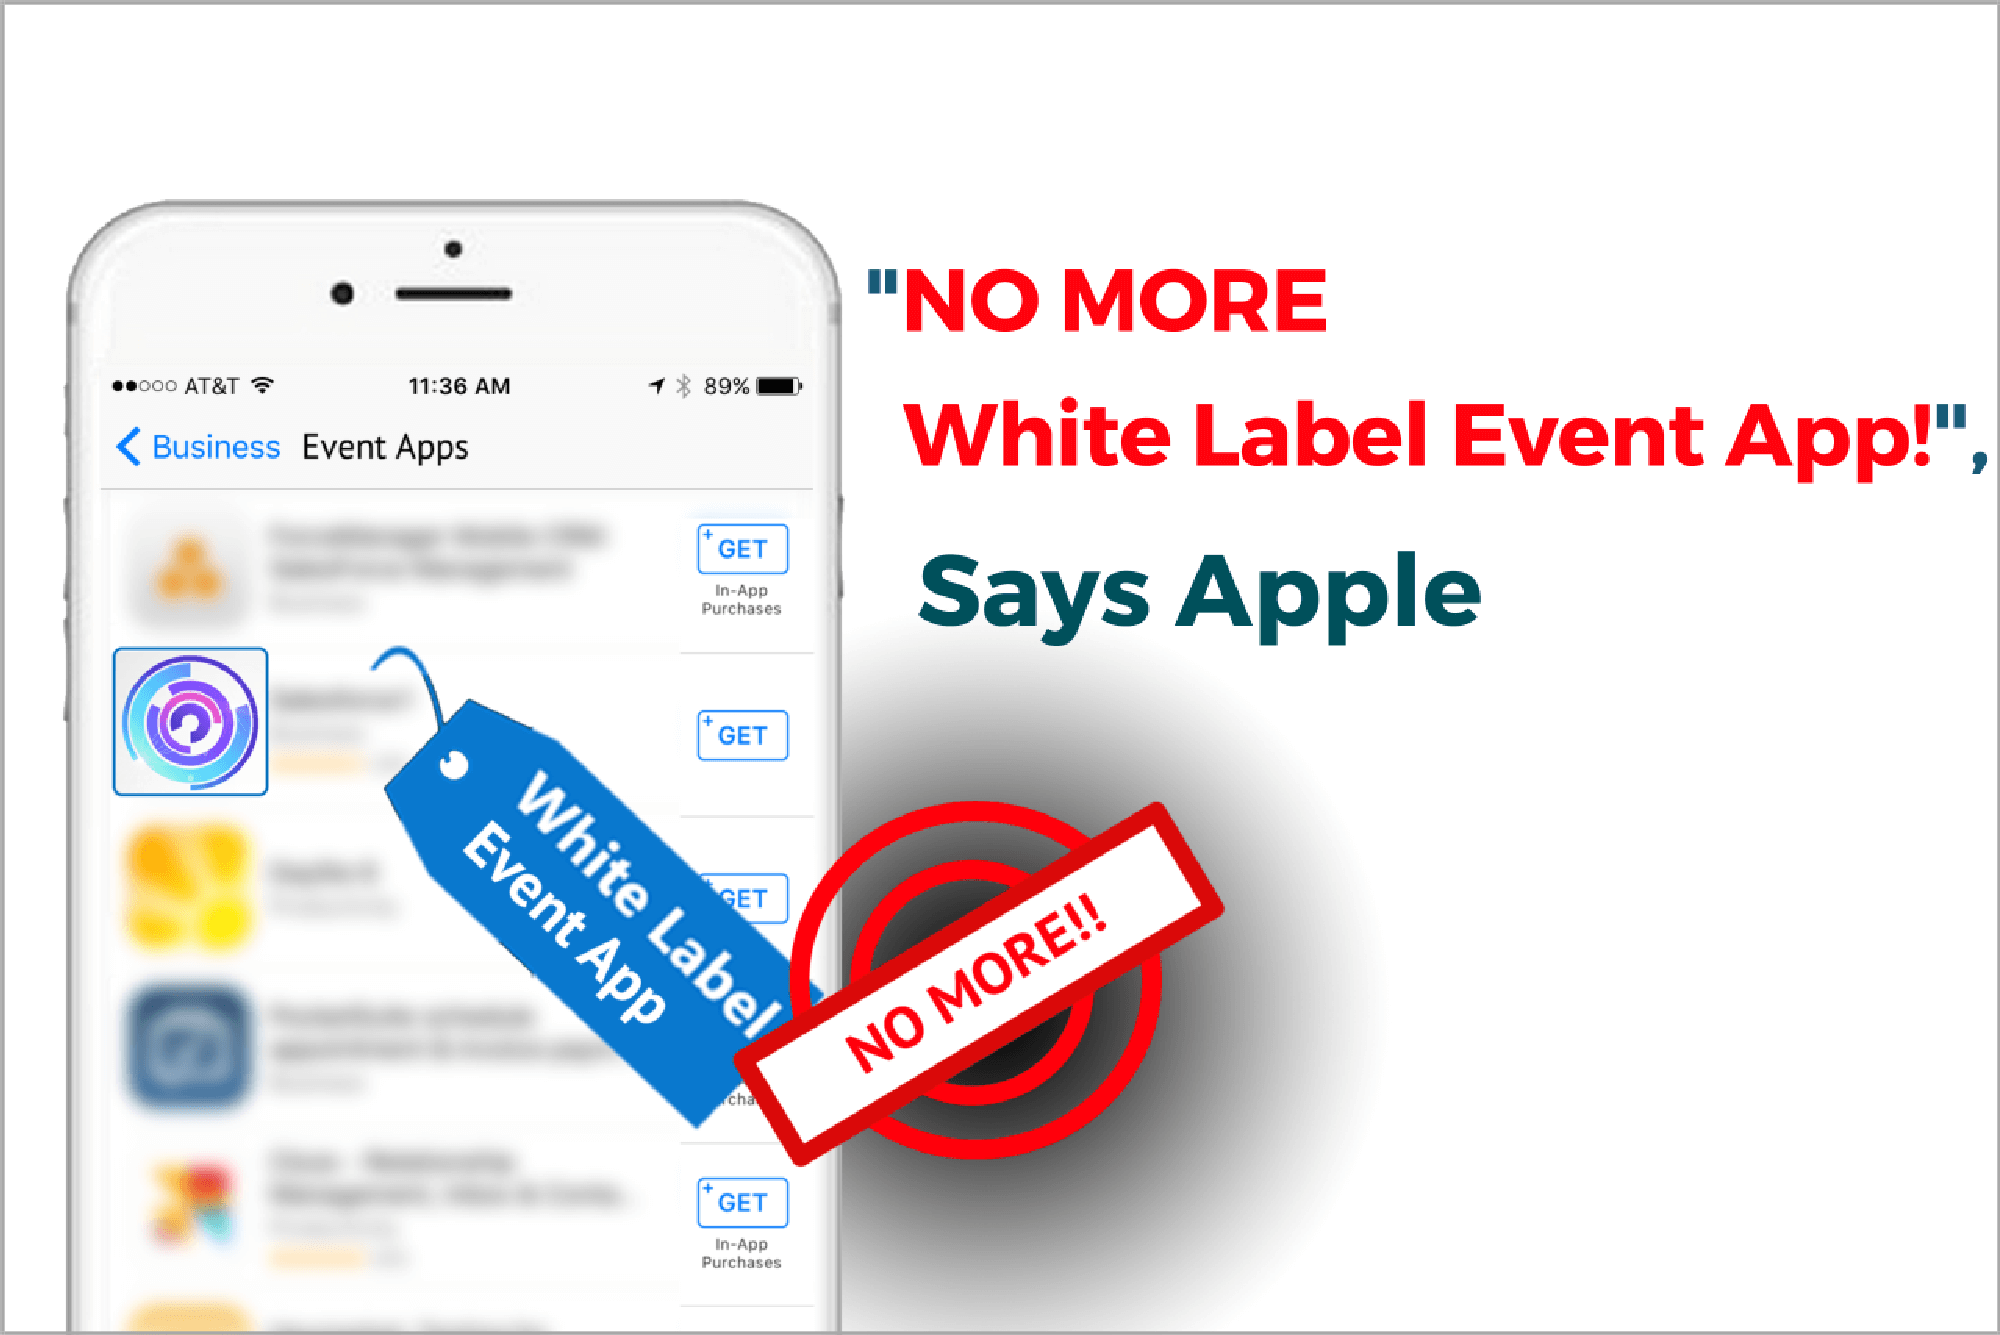 """No More White Label Event Apps!"", Says Apple"